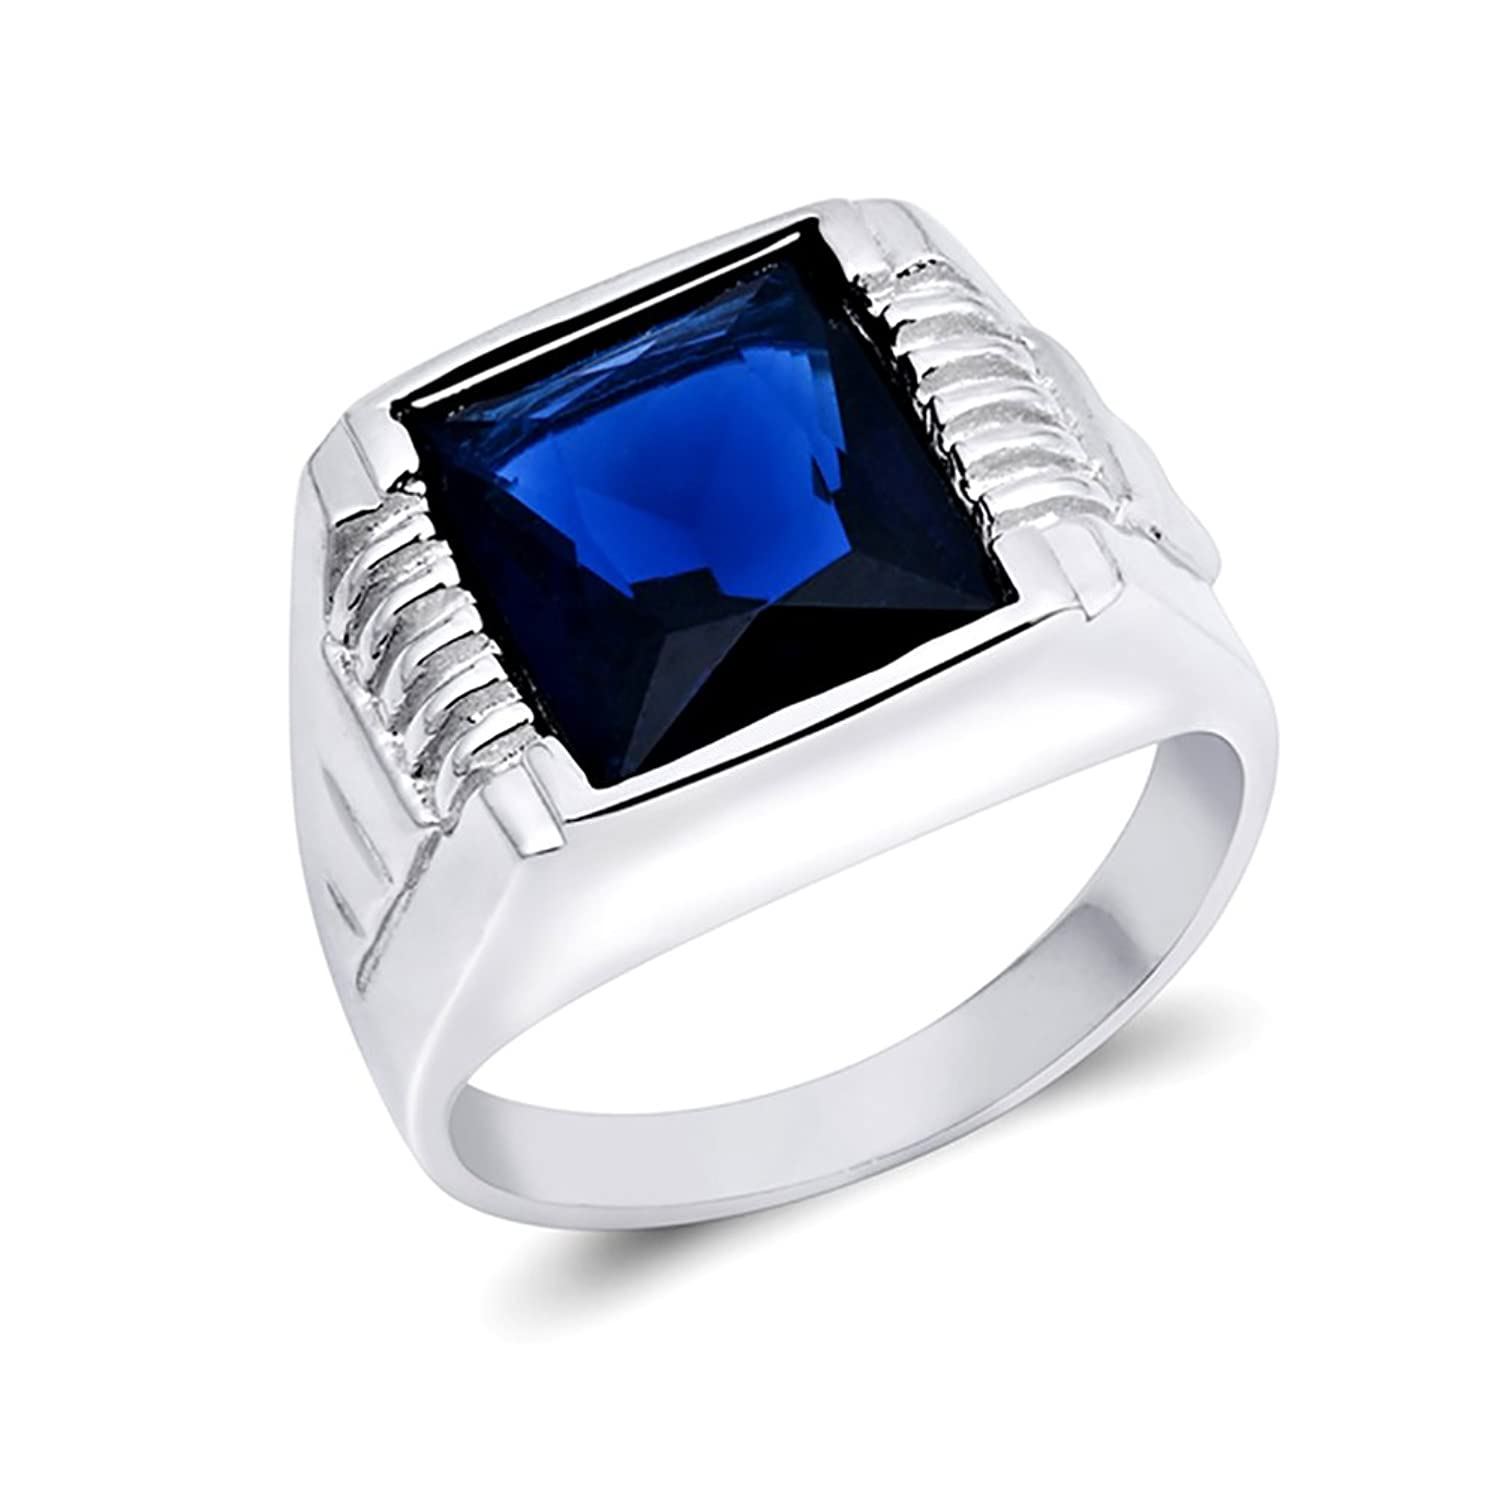 Awesome Engagement Wedding Chess Mens Ring 14K Yellow Gold Plated Round Cut Swiss Blue Topaz